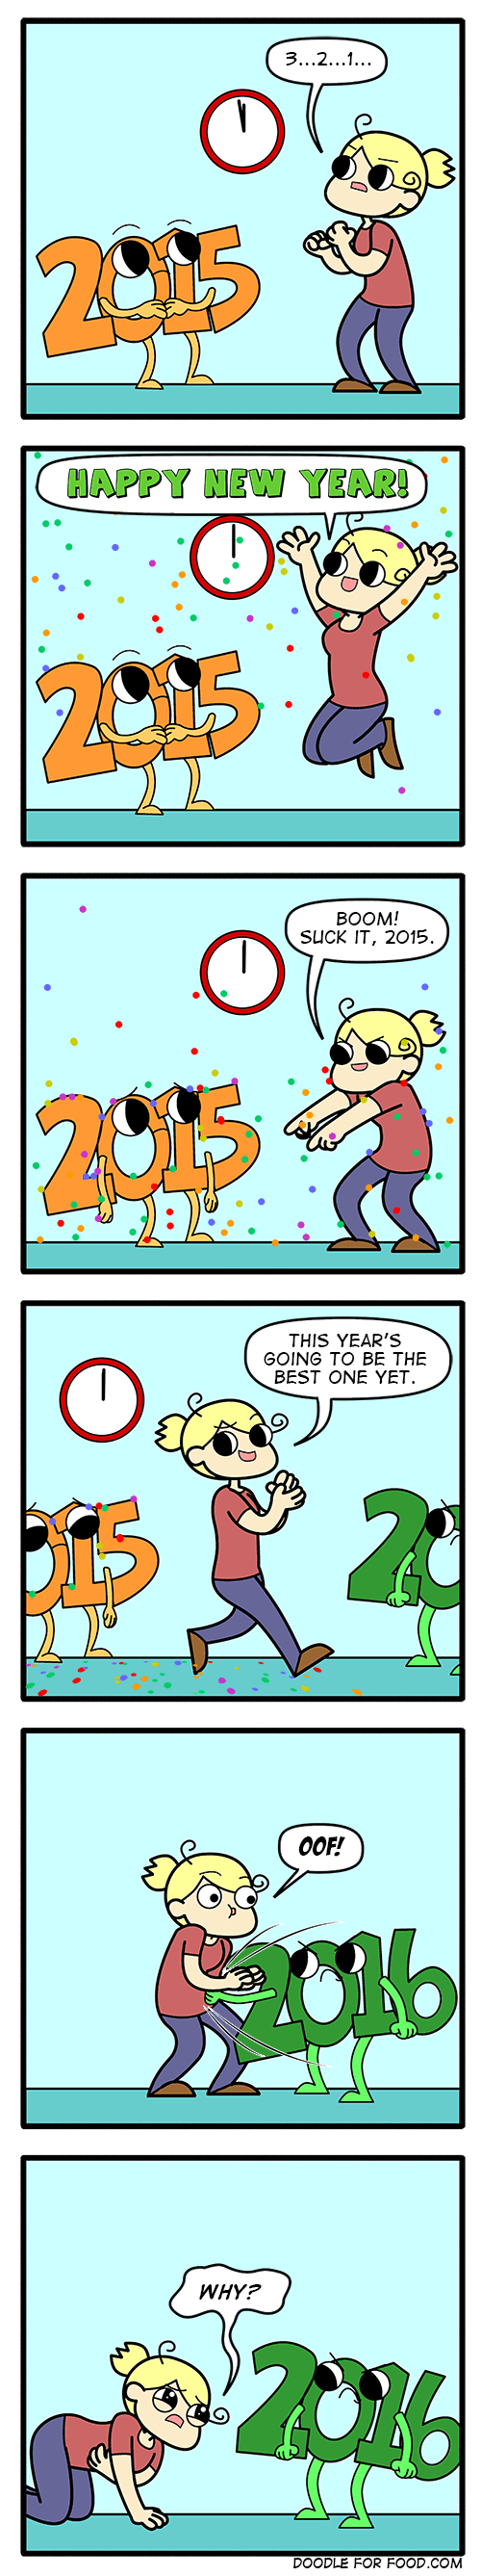 new years web comics - 8600149504